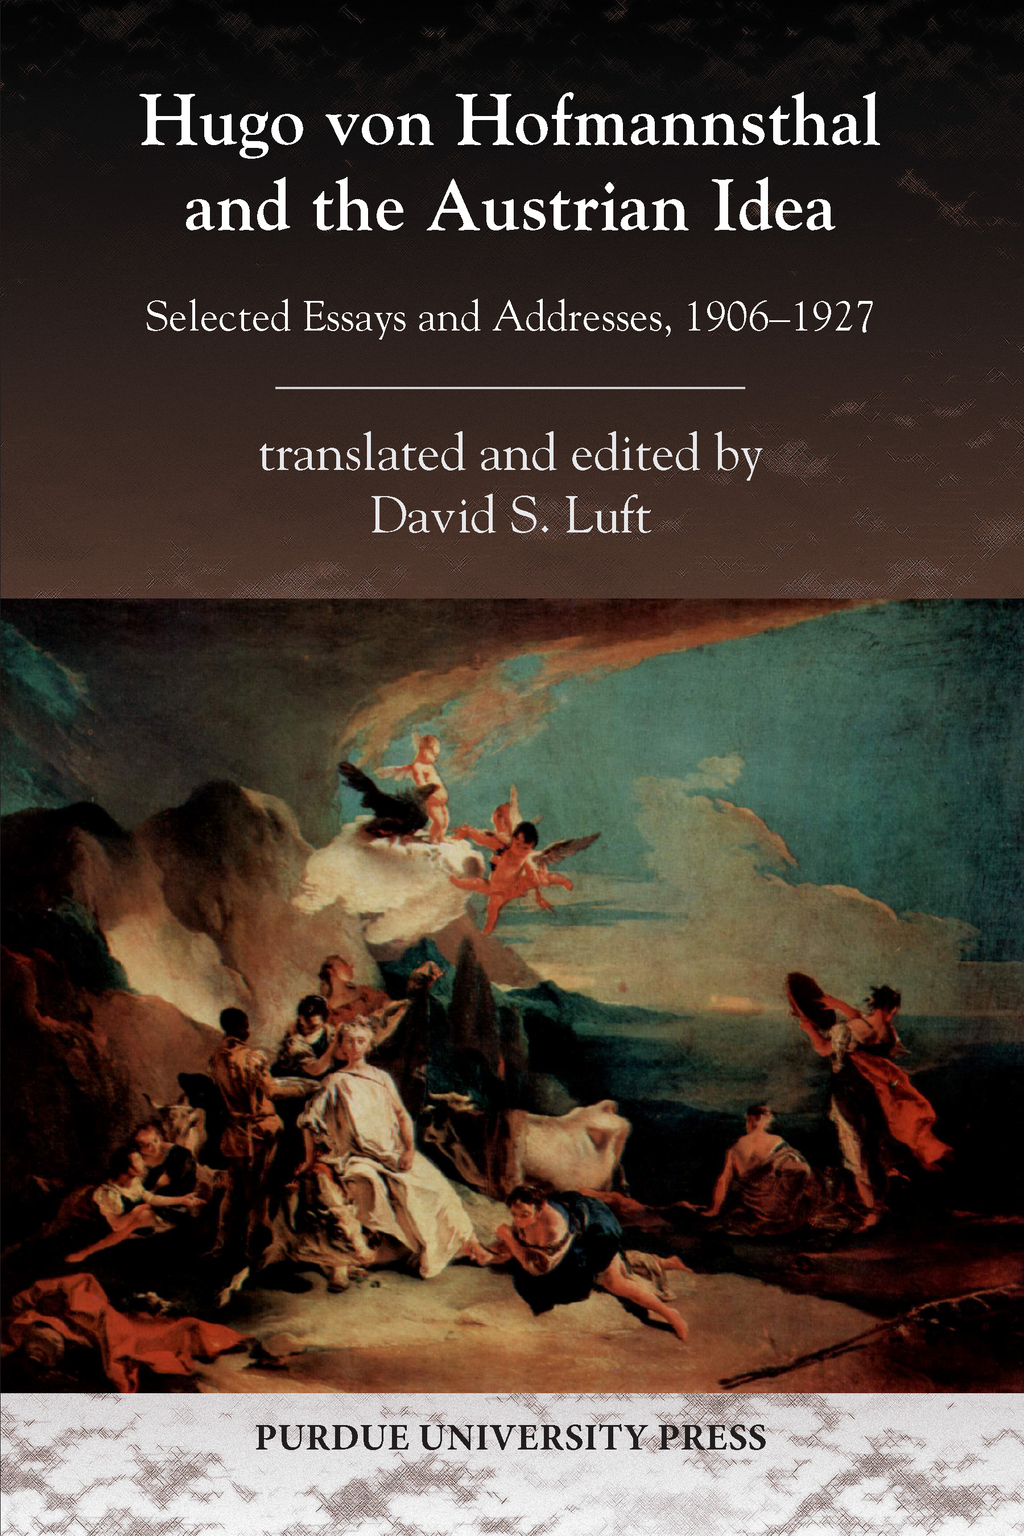 Hugo von Hofmannsthal and the Austrian Idea: Selected Essays and Addresses, 1906-1927 By: David S. Luft